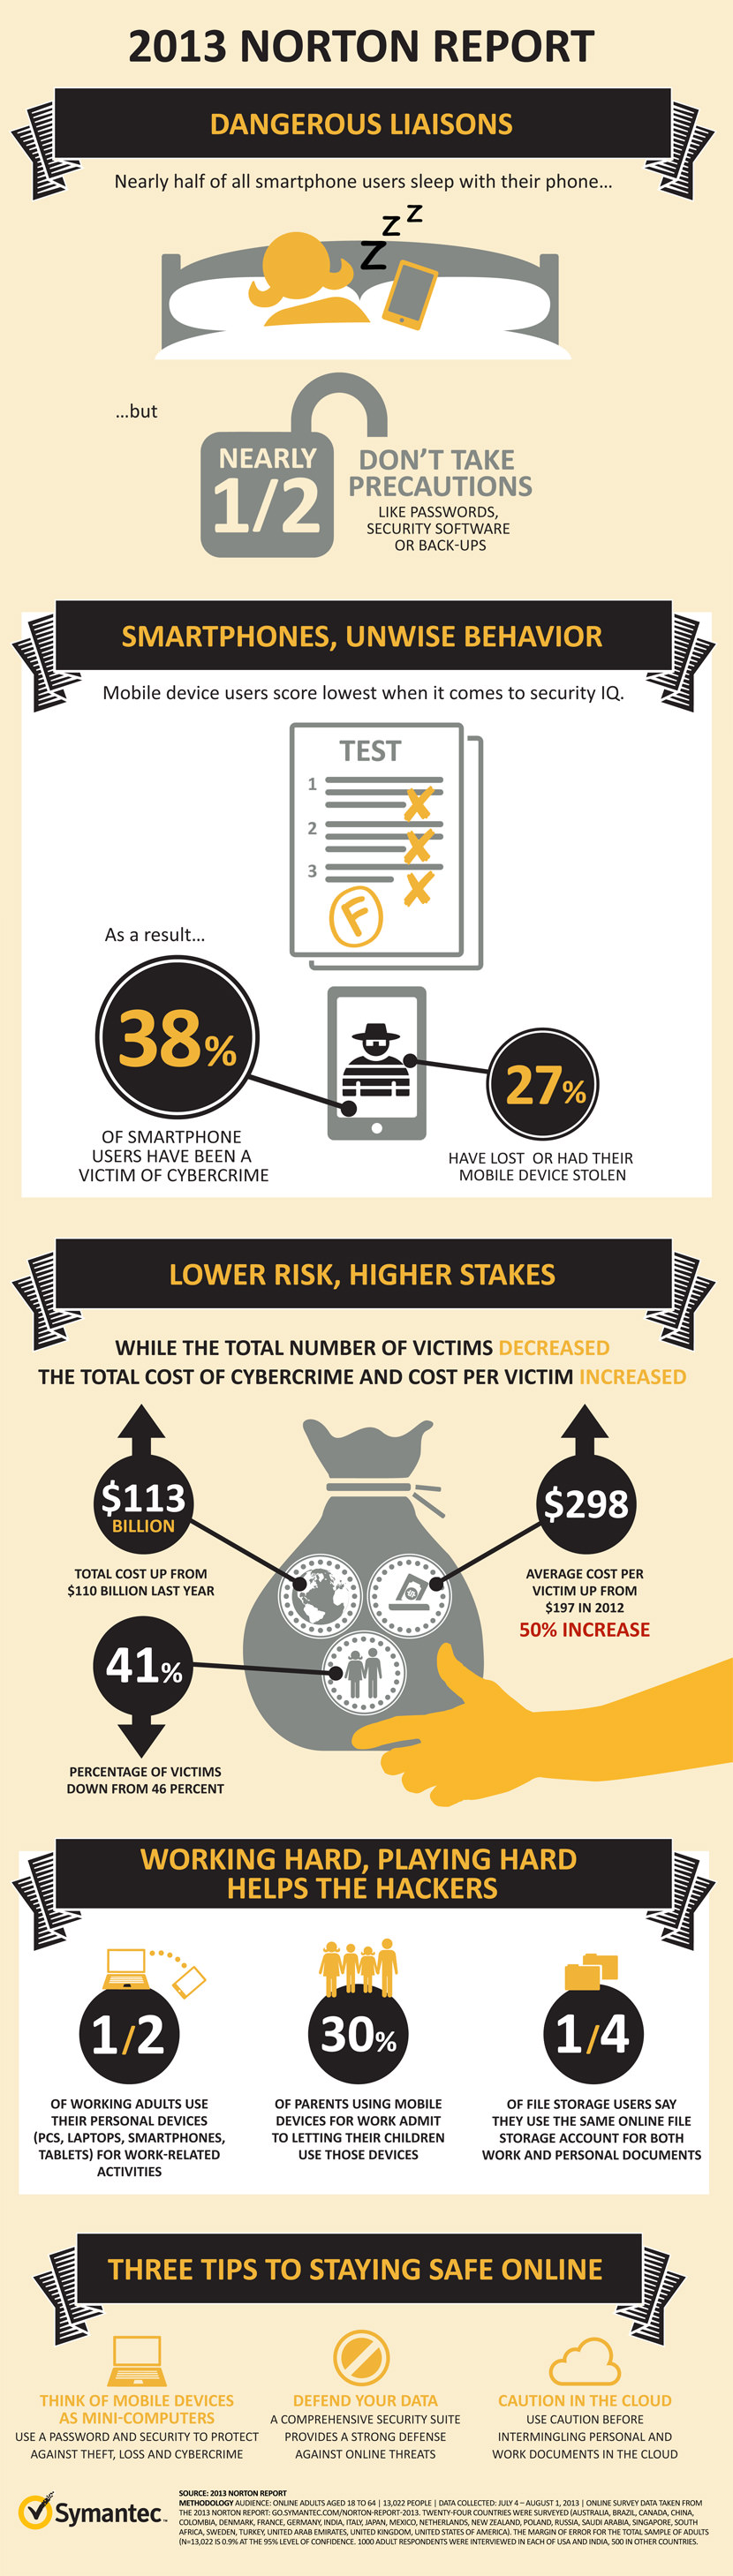 Norton Mobile Security Norton infographic 2013_FINAL